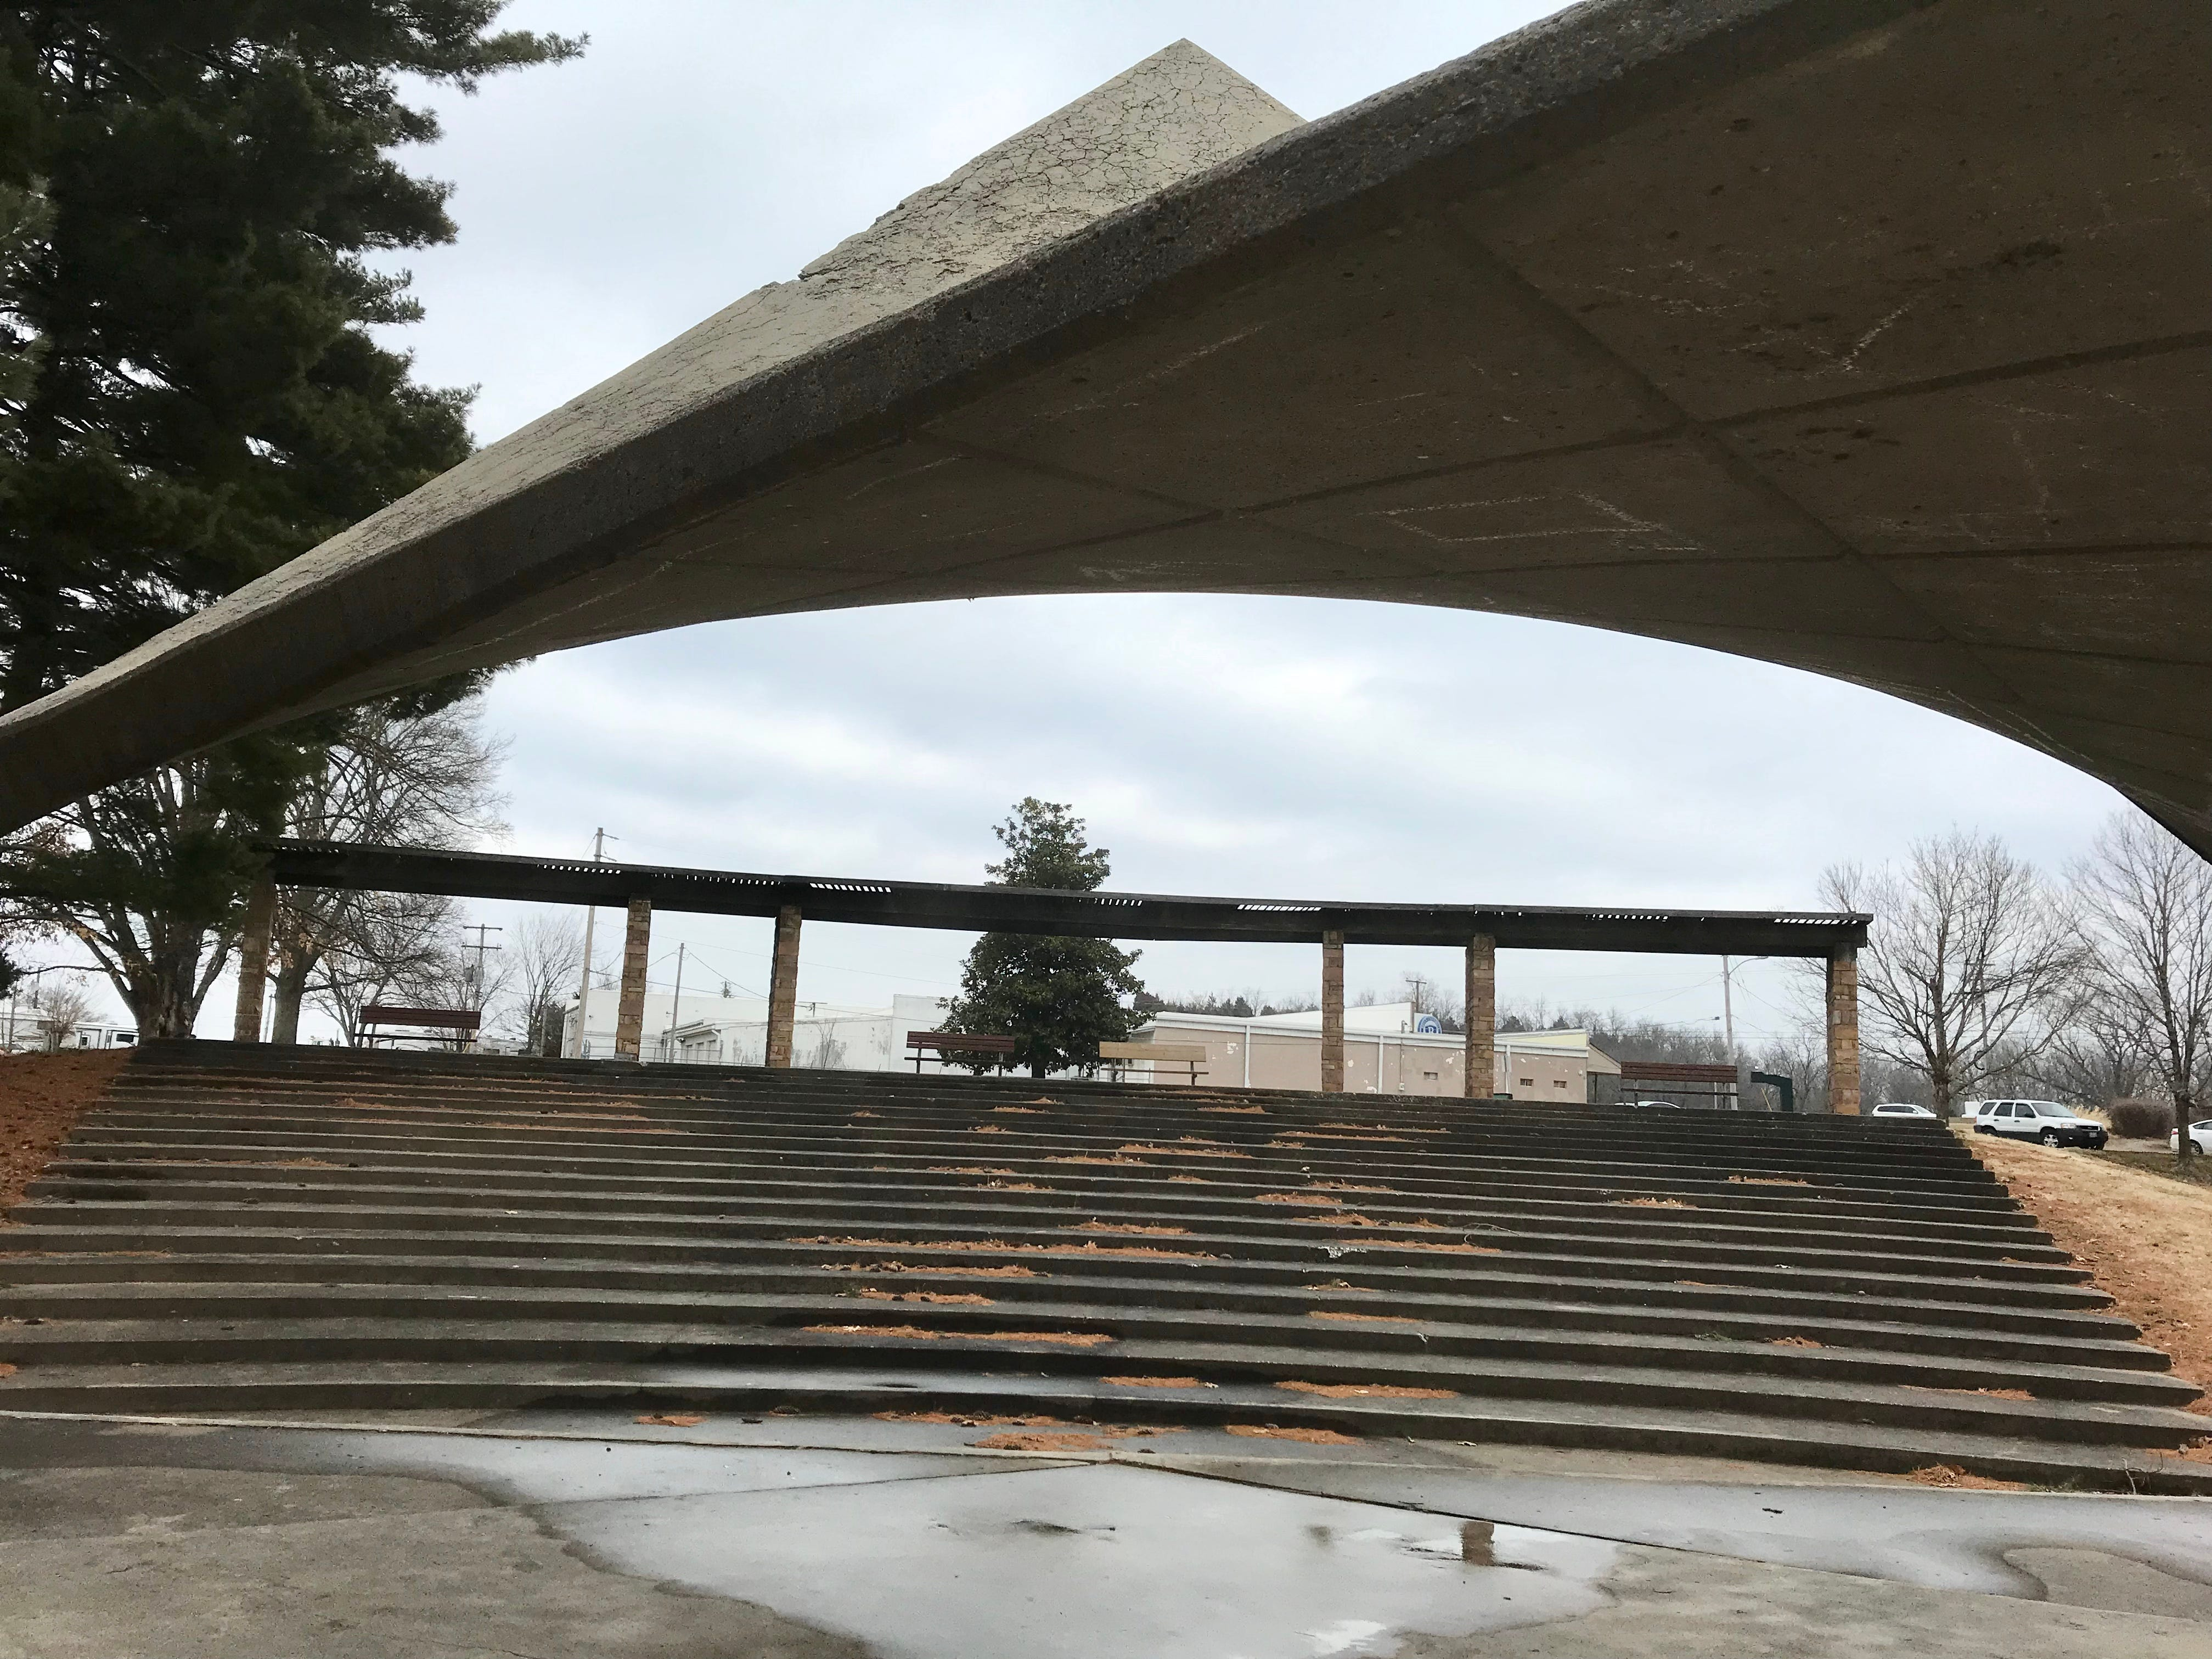 Living Memorial Park covers 10 acres and is at 4323 S. Nature Center Way.  It has a amphitheater as well as a pavillion.